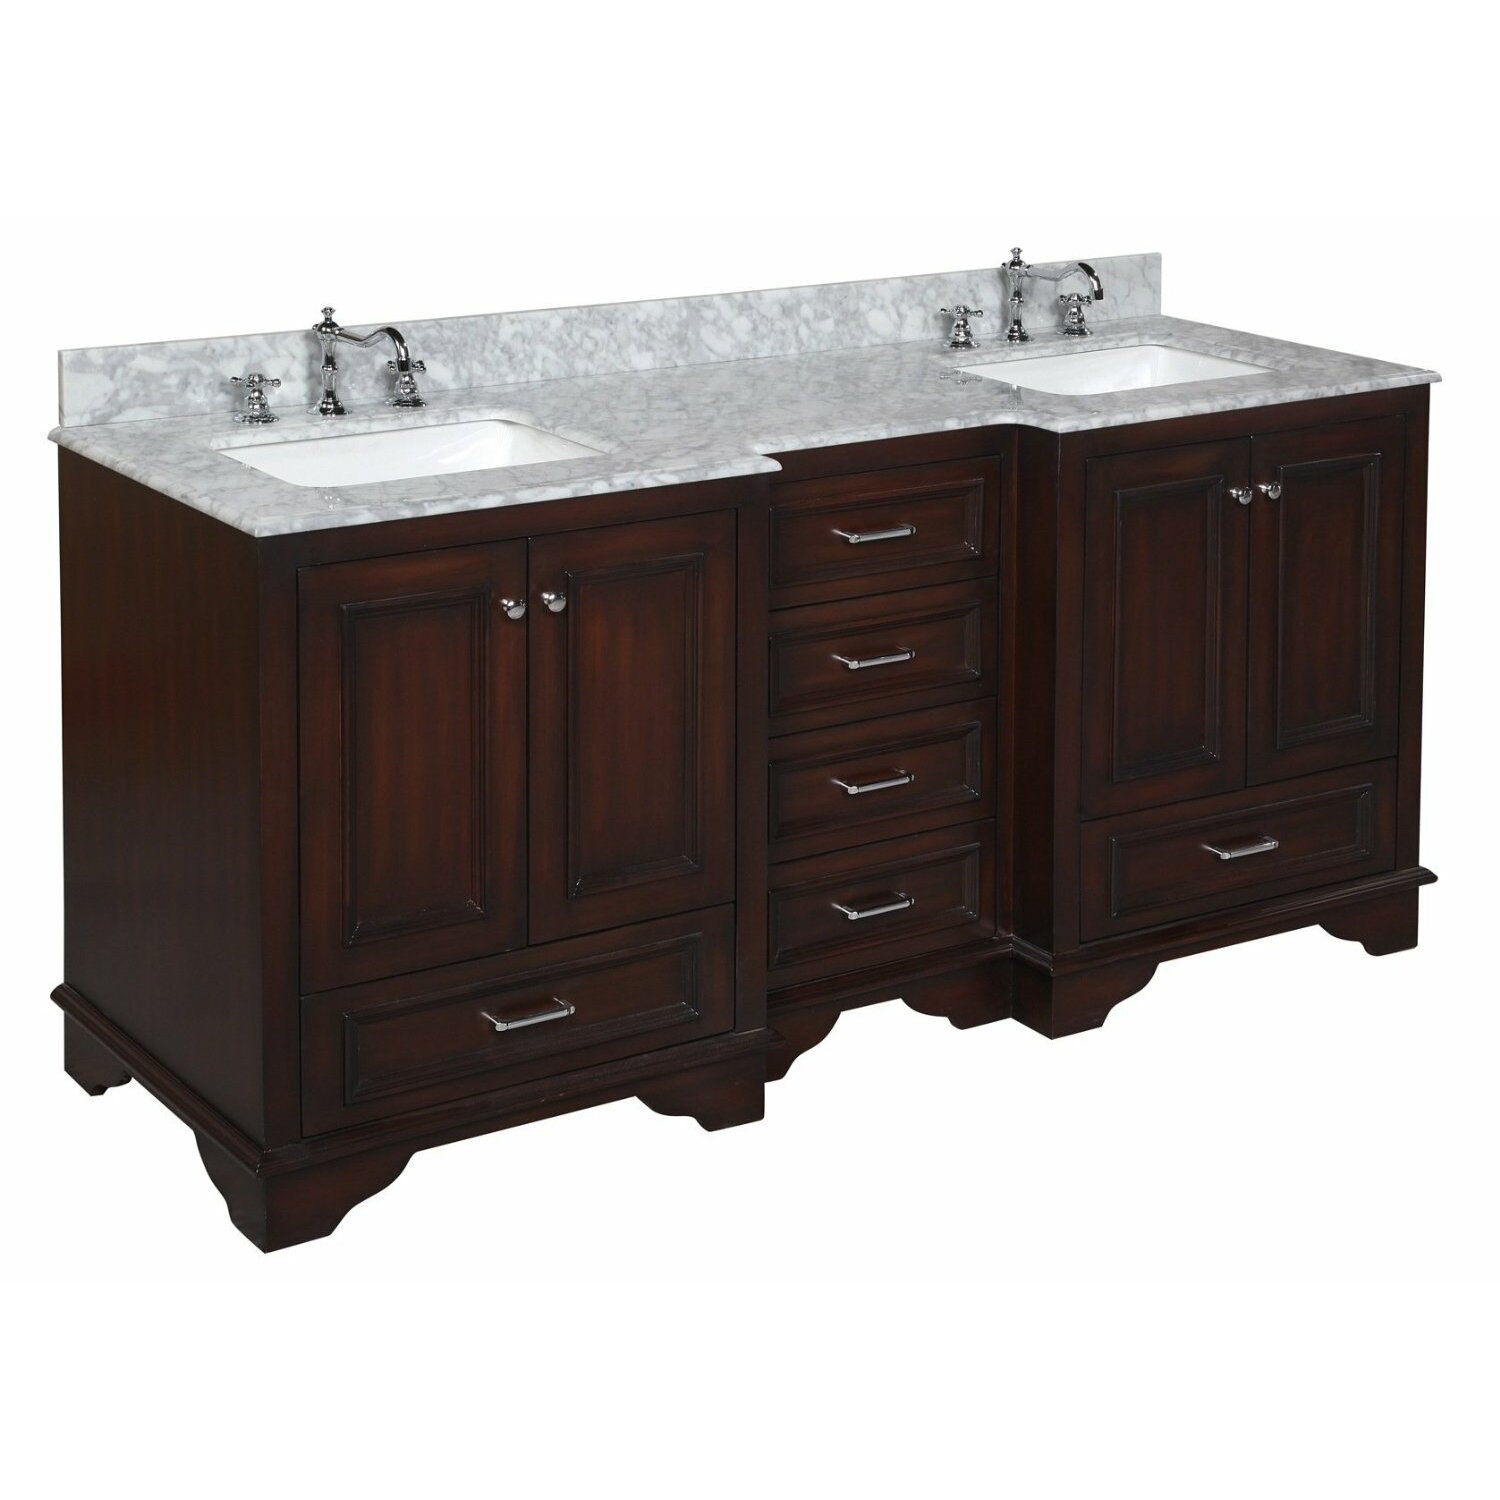 Kbc nantucket 72 double bathroom vanity set reviews for Bathroom 72 double vanity